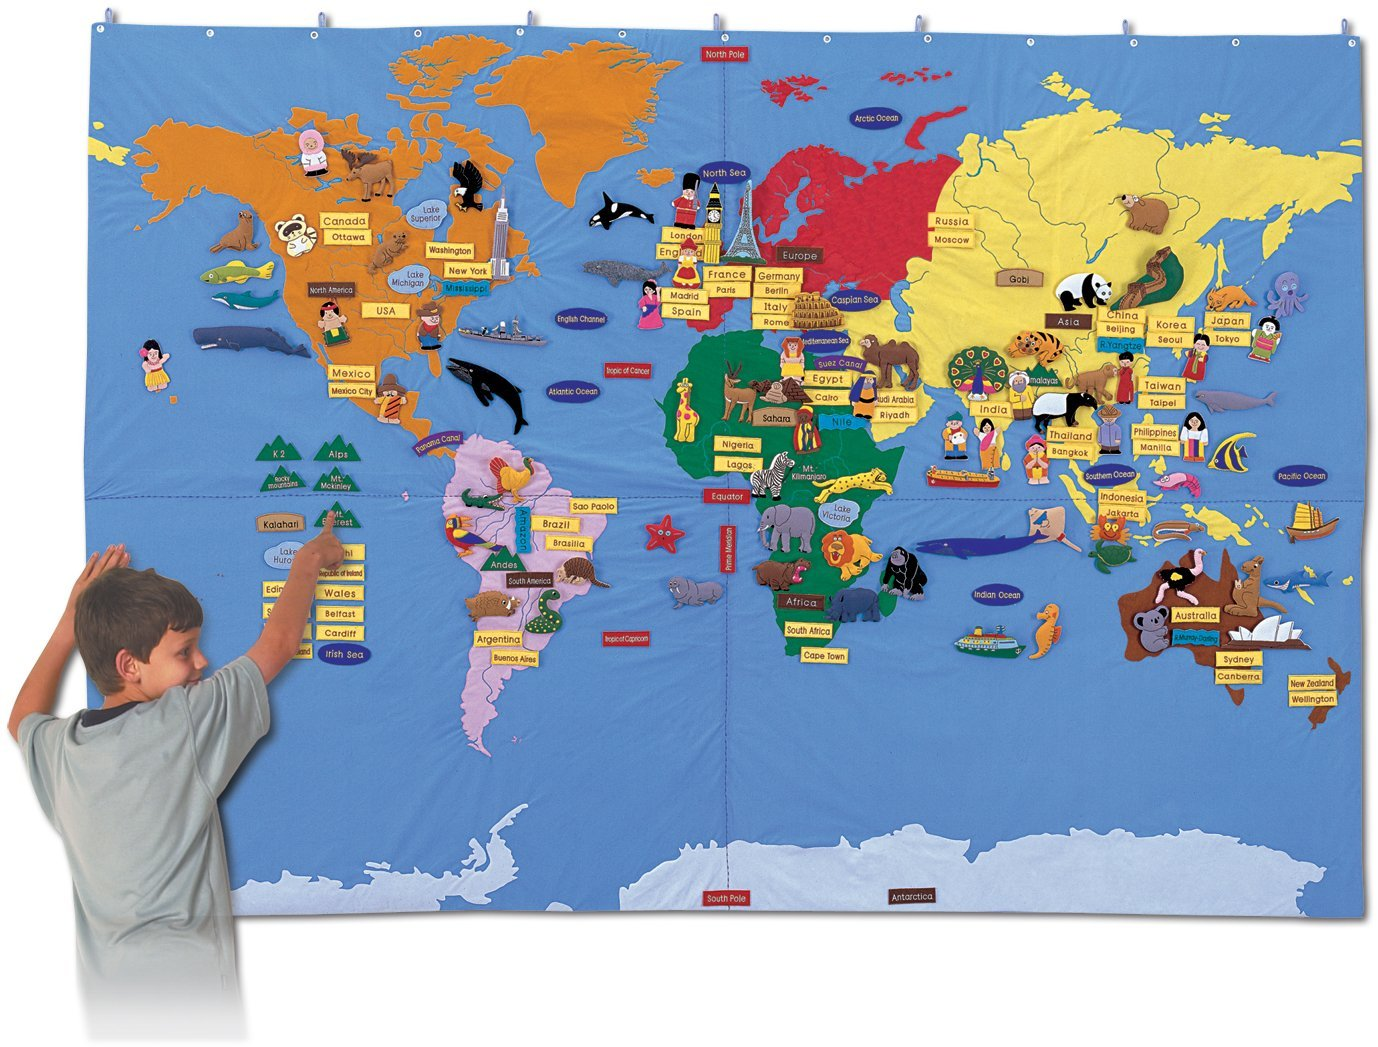 Amazoncom Eqd Giant World Map With Detachable Pieces Toys Games - Fao schwarz felt us wall map giant